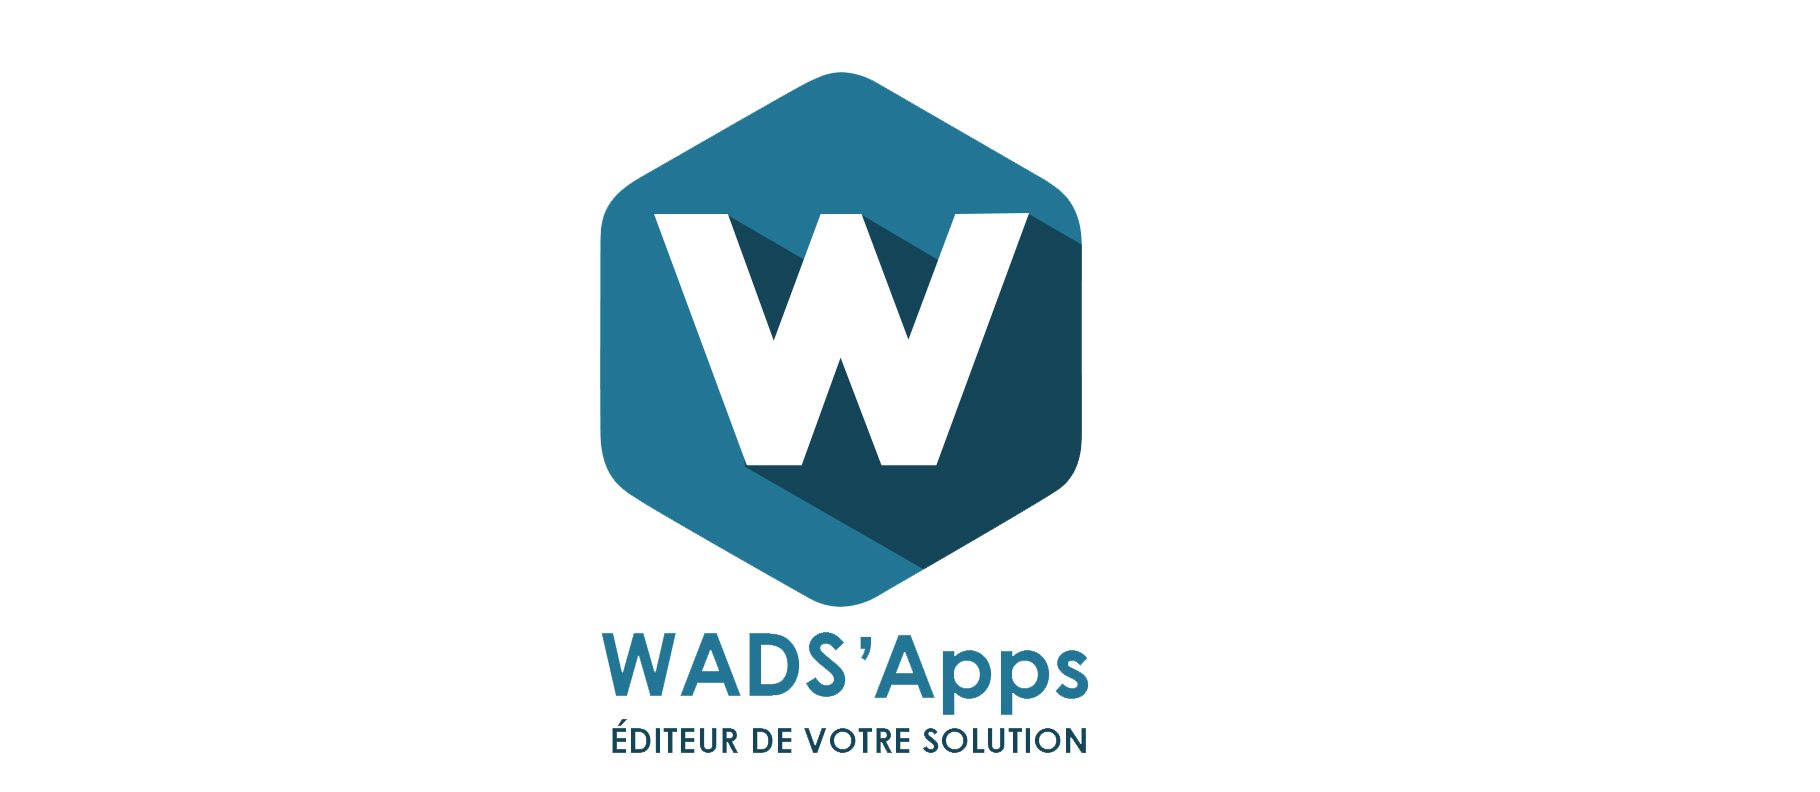 WADS'Apps